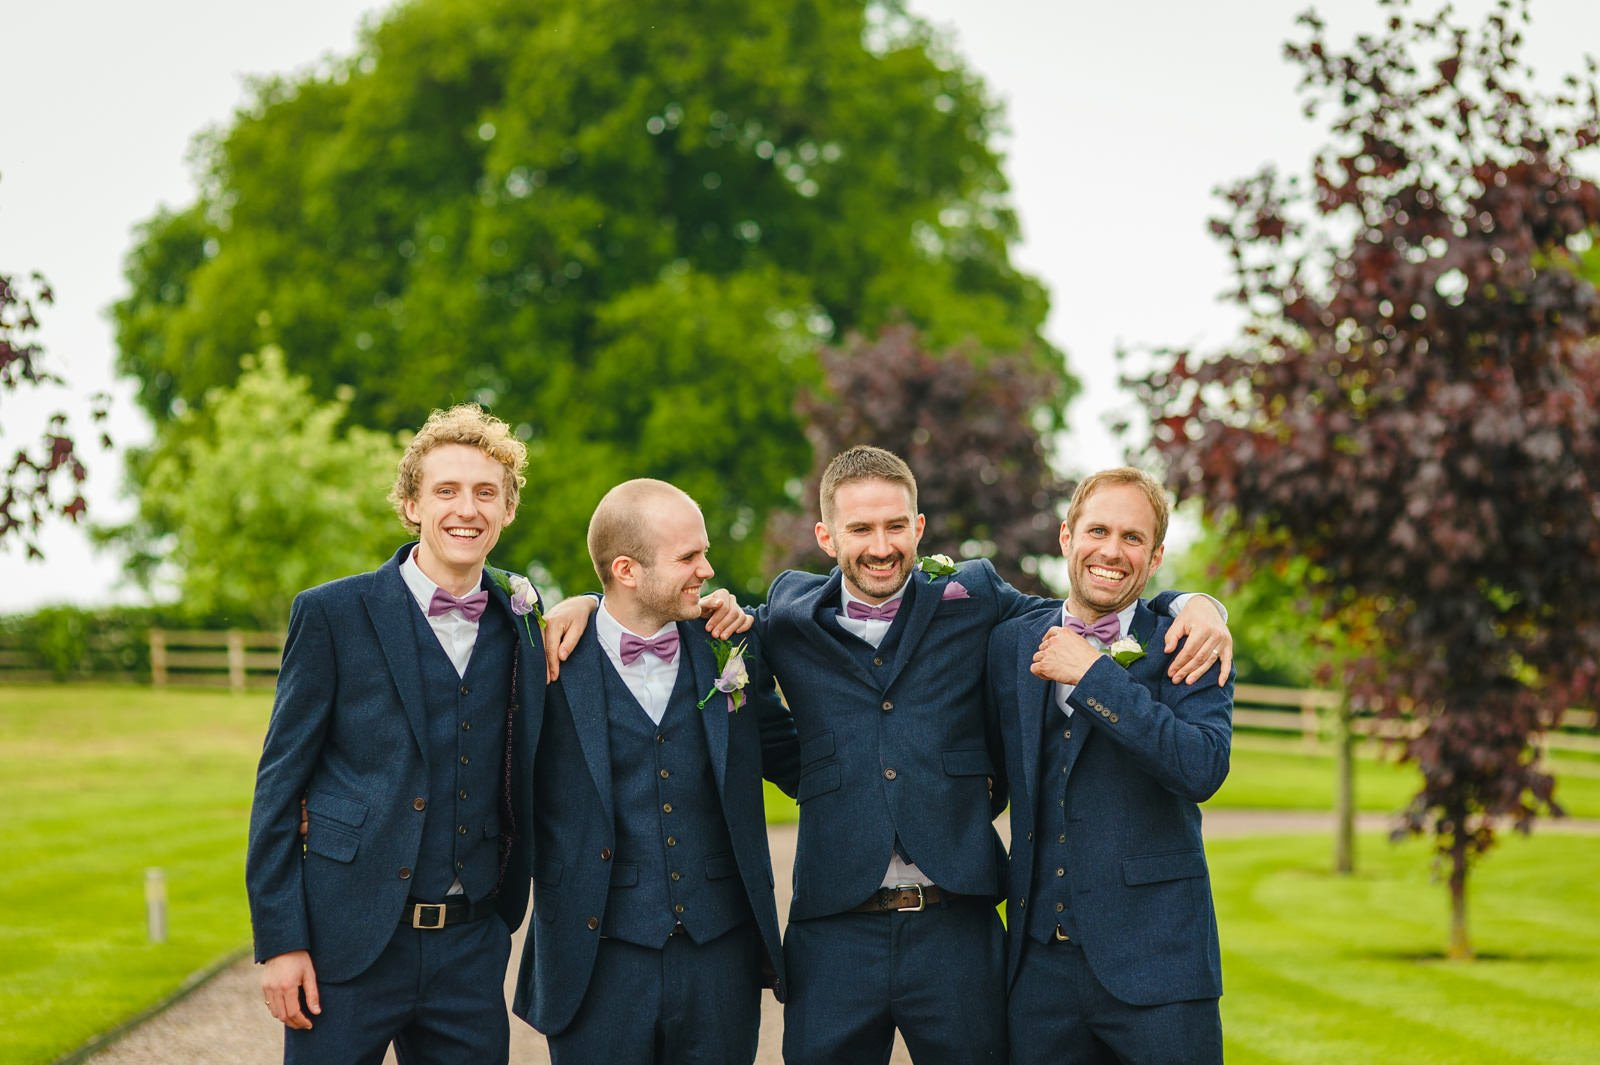 millers of netley wedding 72 - Millers Of Netley wedding, Dorrington, Shrewsbury | Emma + Ben